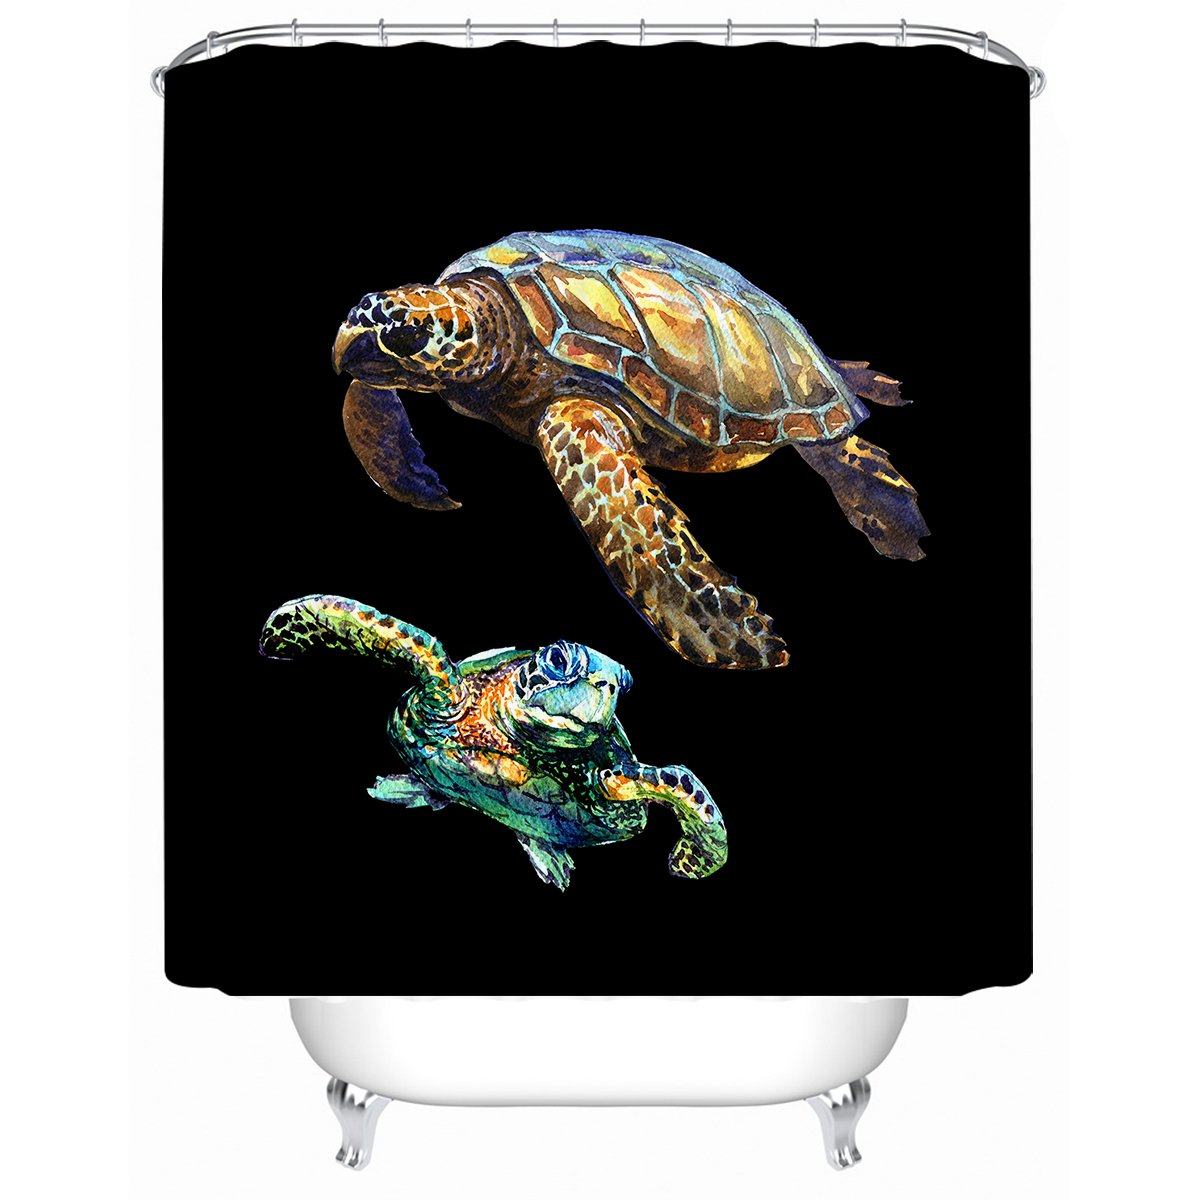 Sea Turtles in Black Shower Curtain